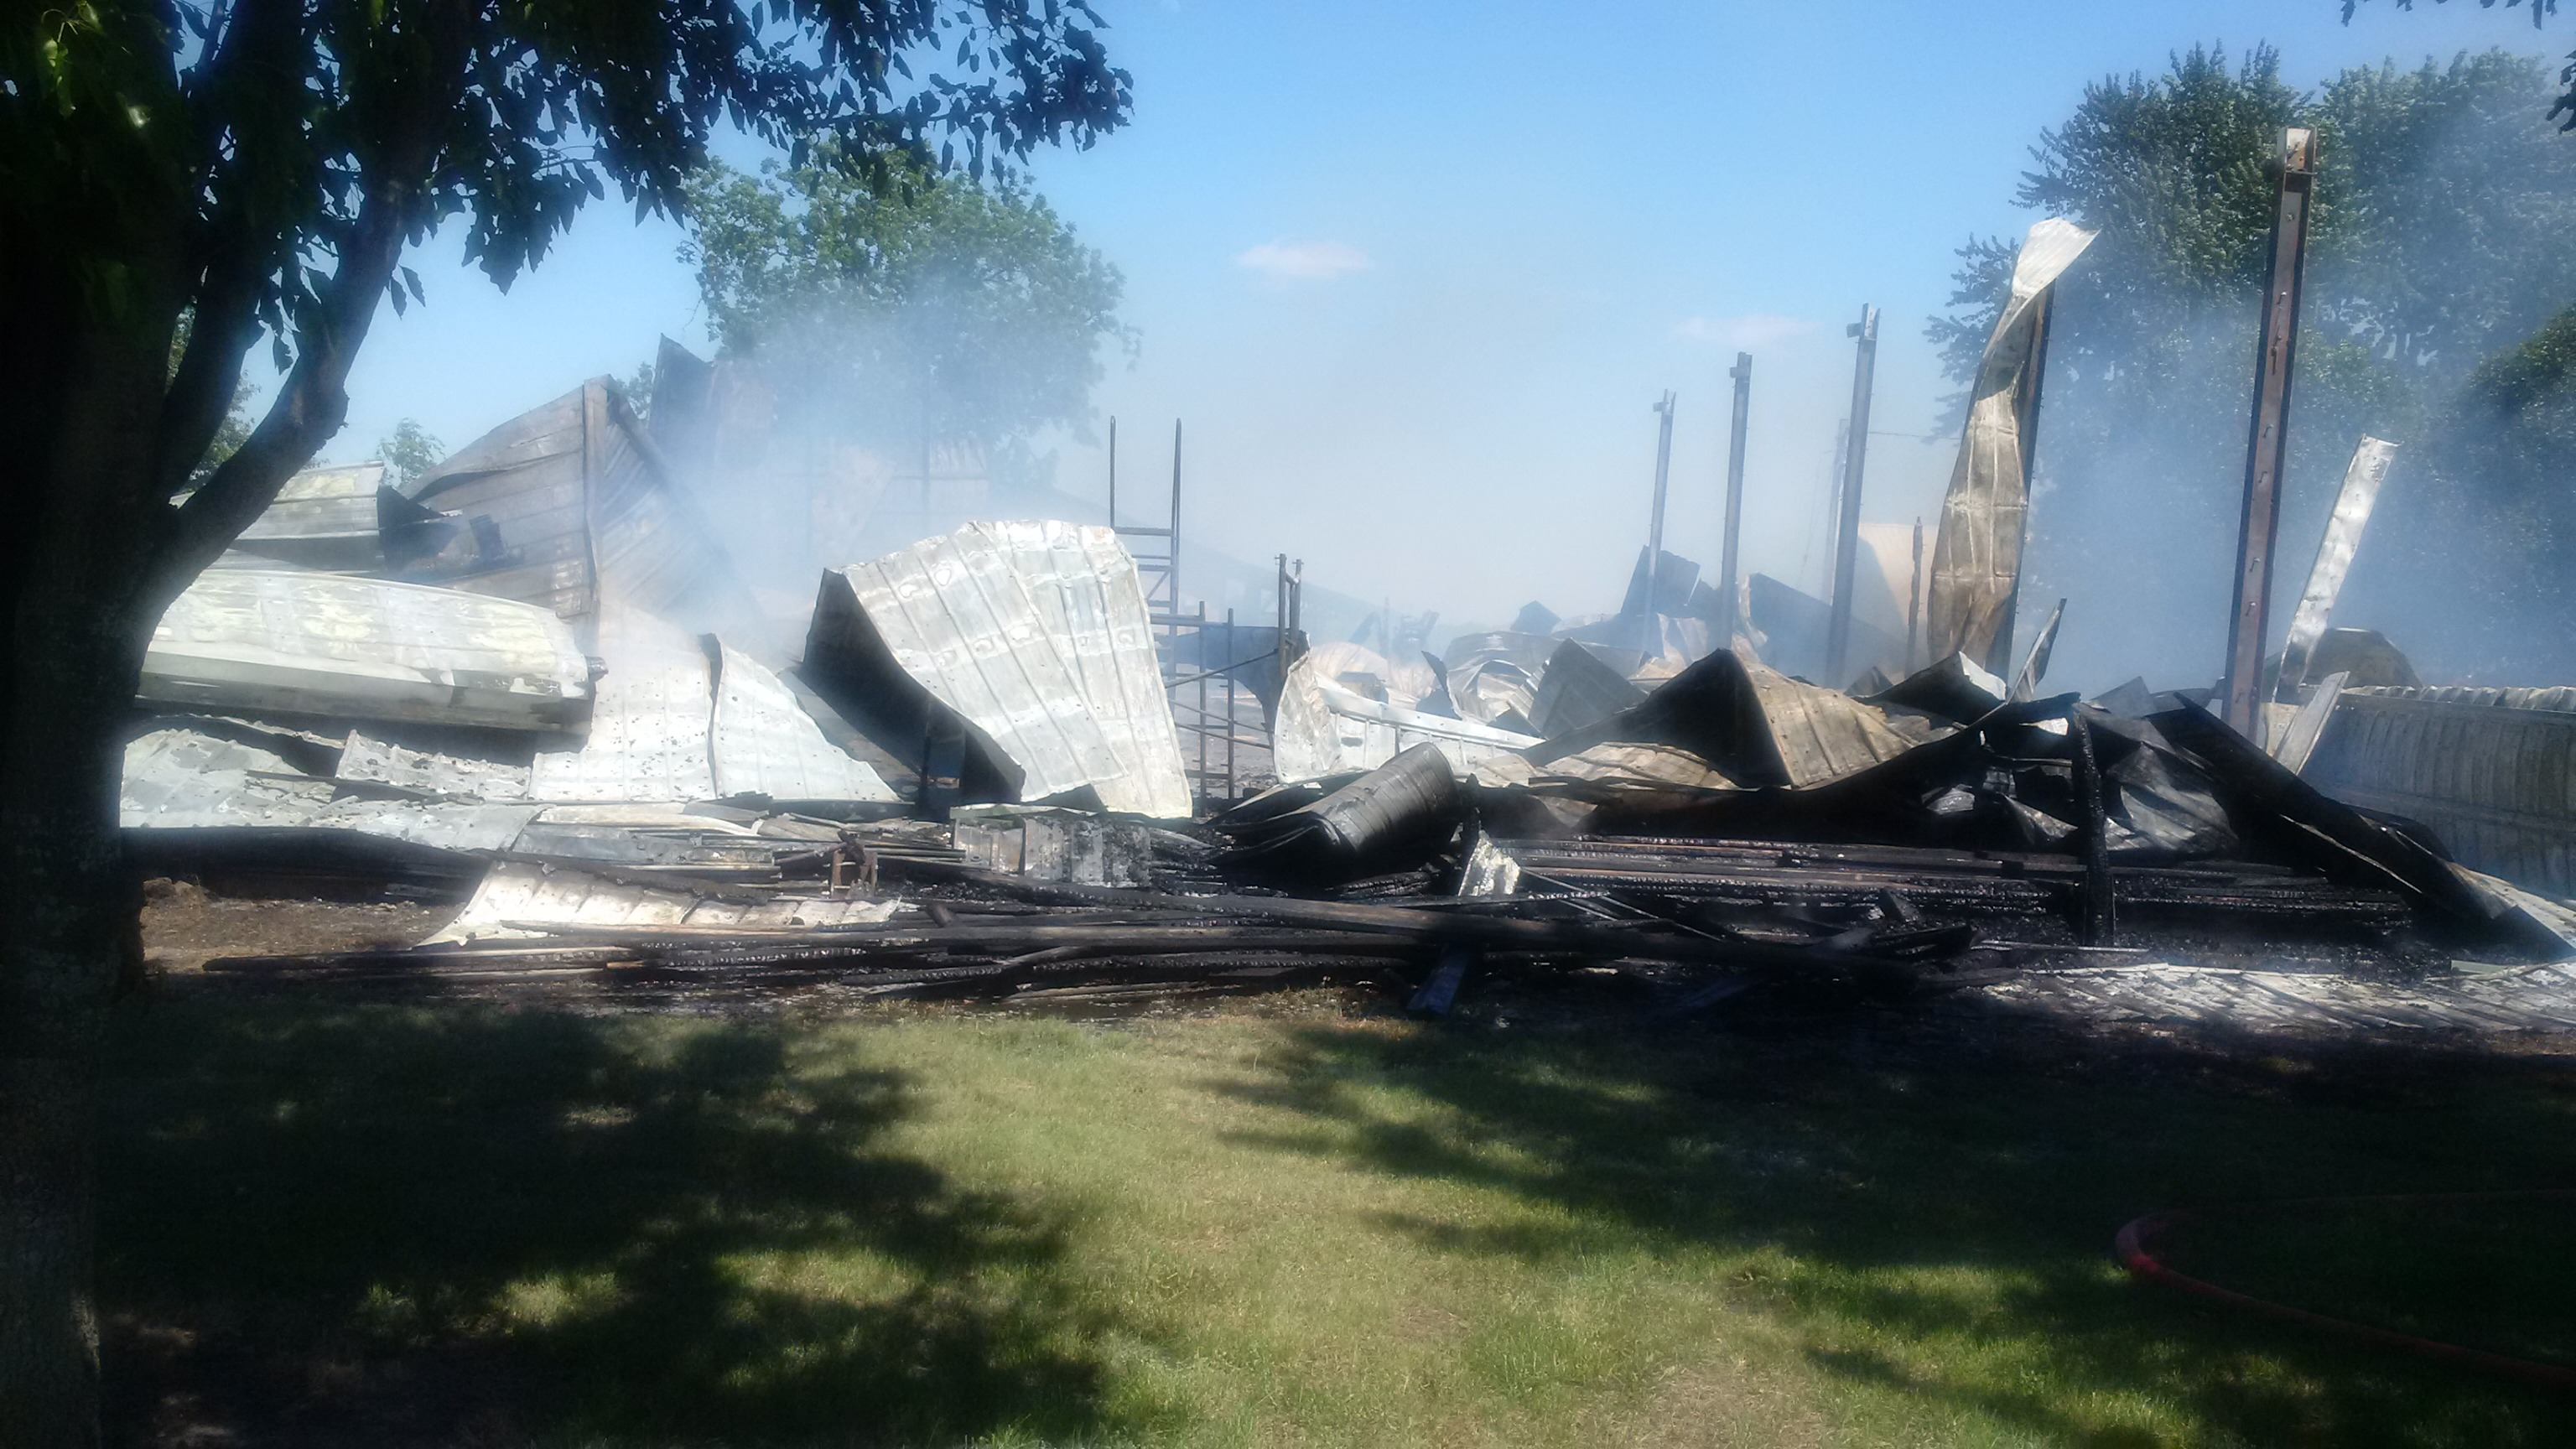 Fire in rural Carroll County destroys large out-building, injures one